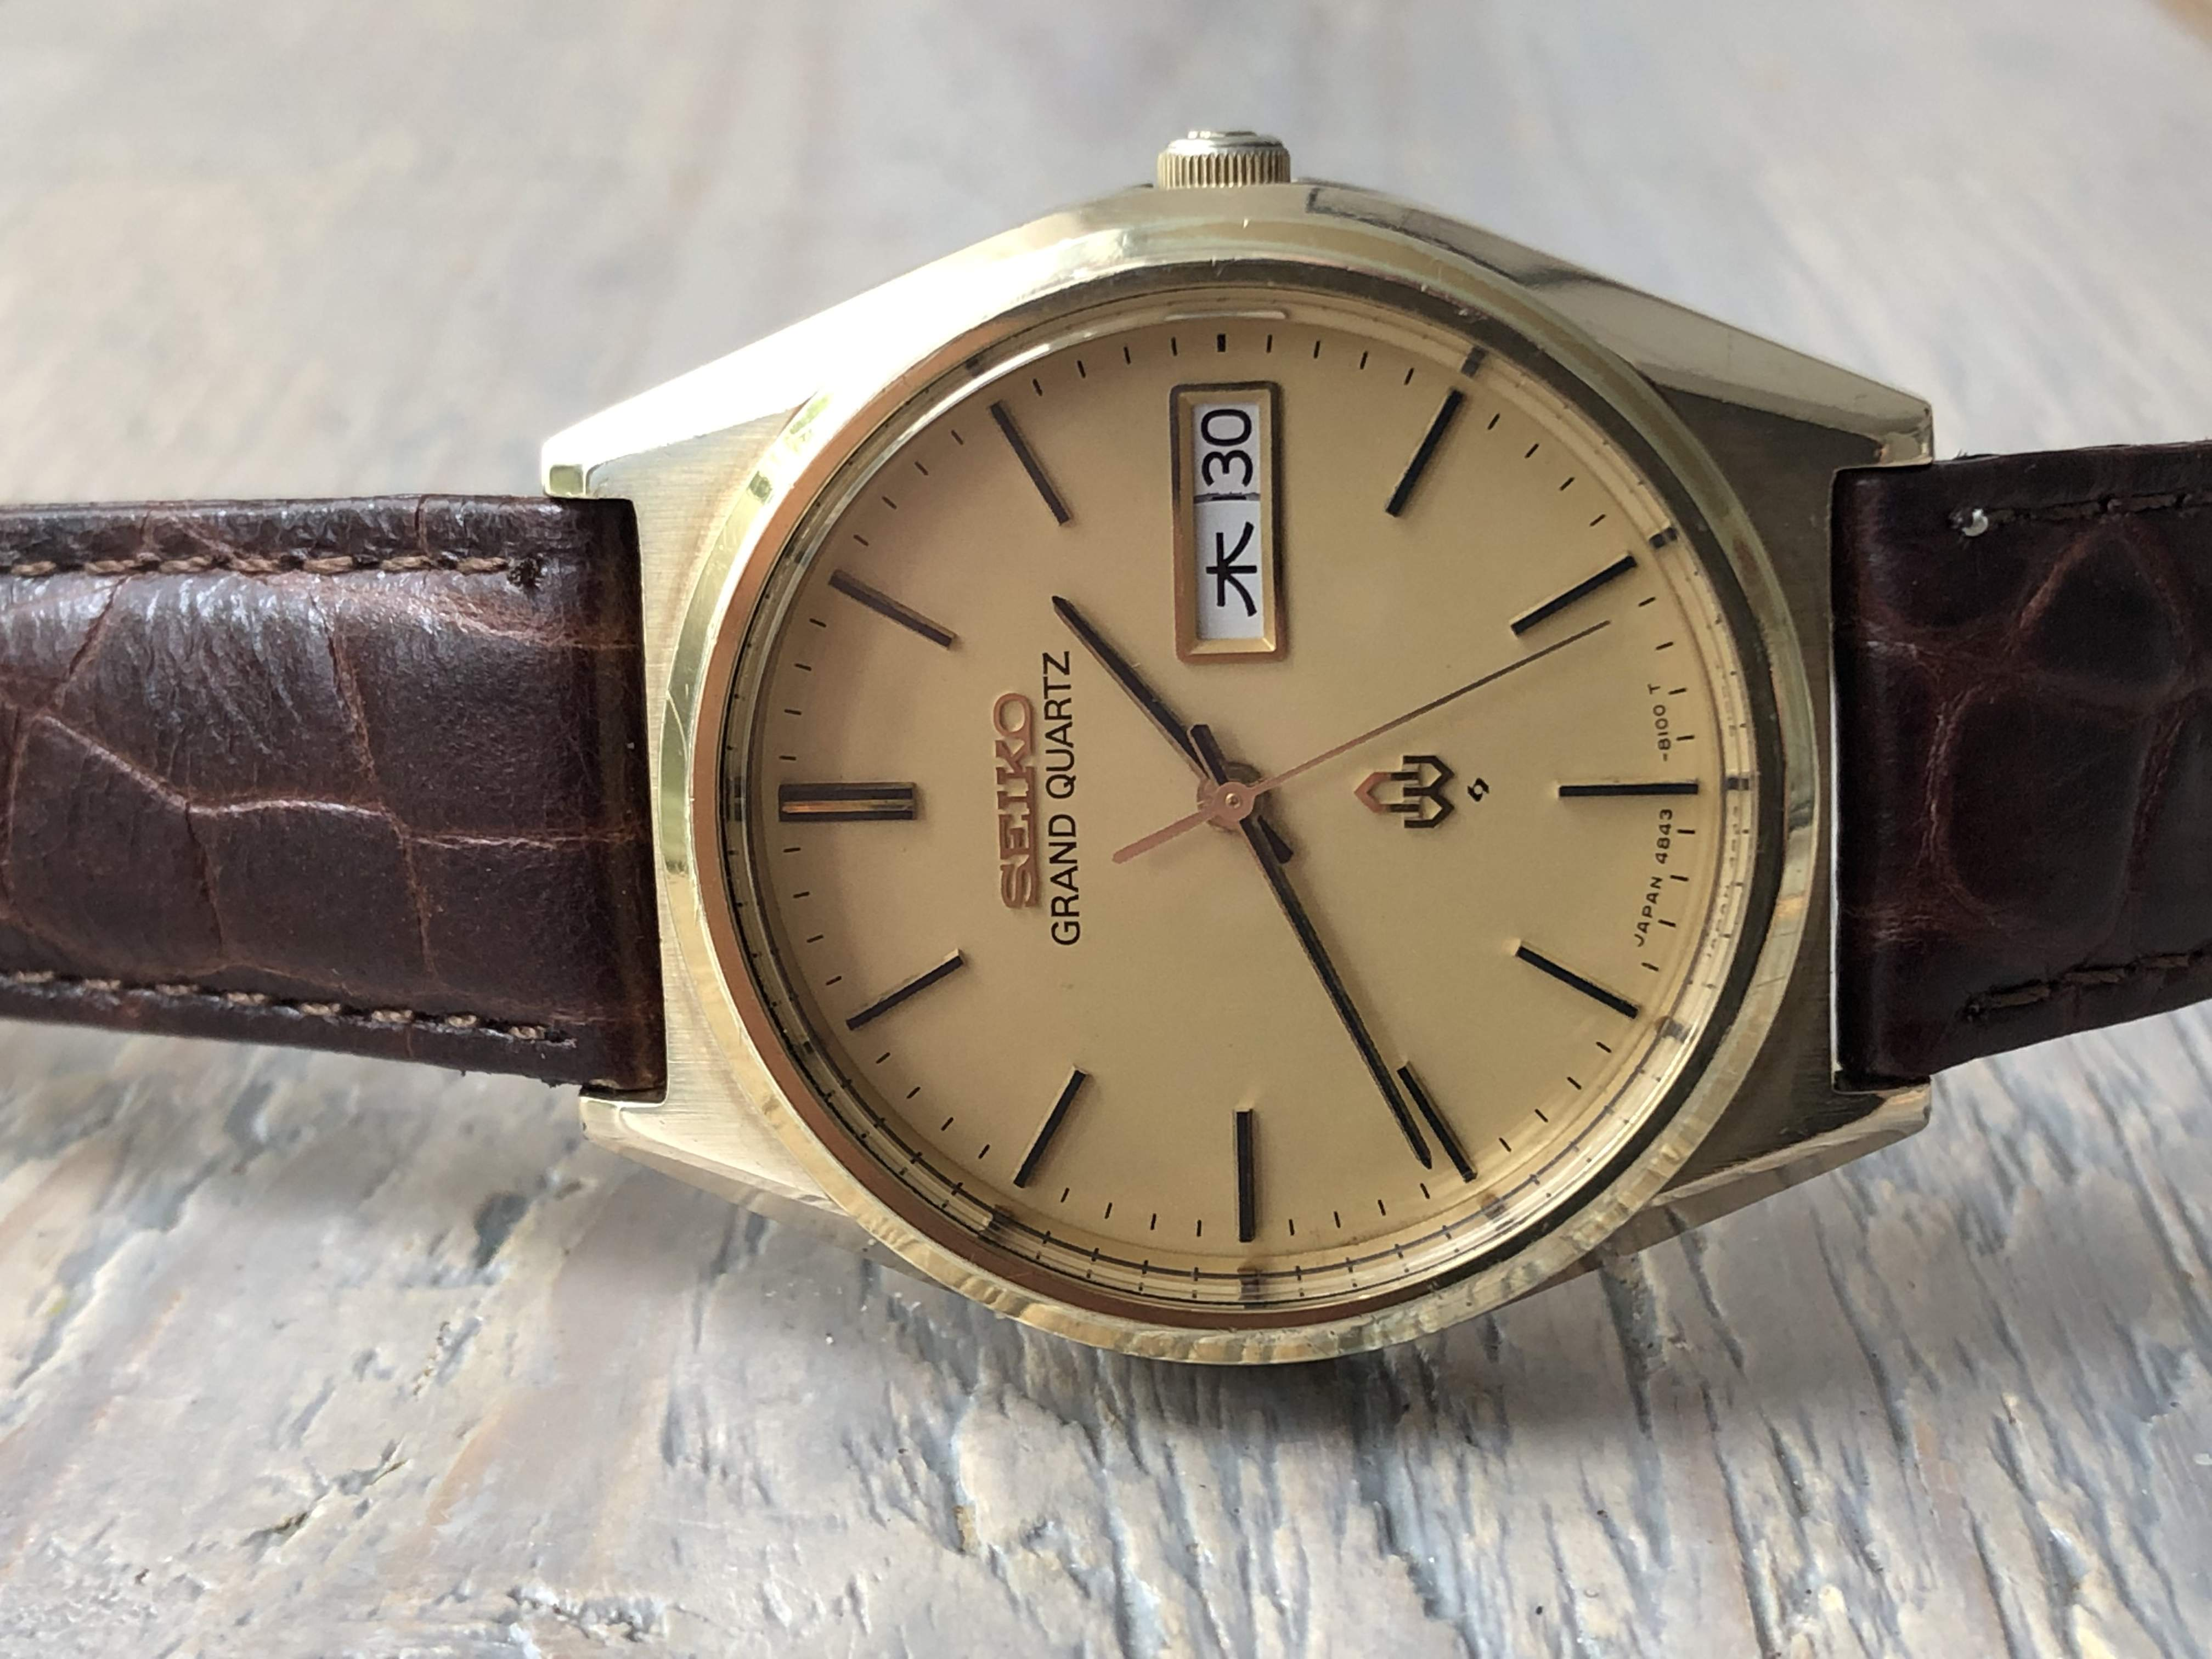 Seiko Grand Quartz GC 4843-8110 (Sold)